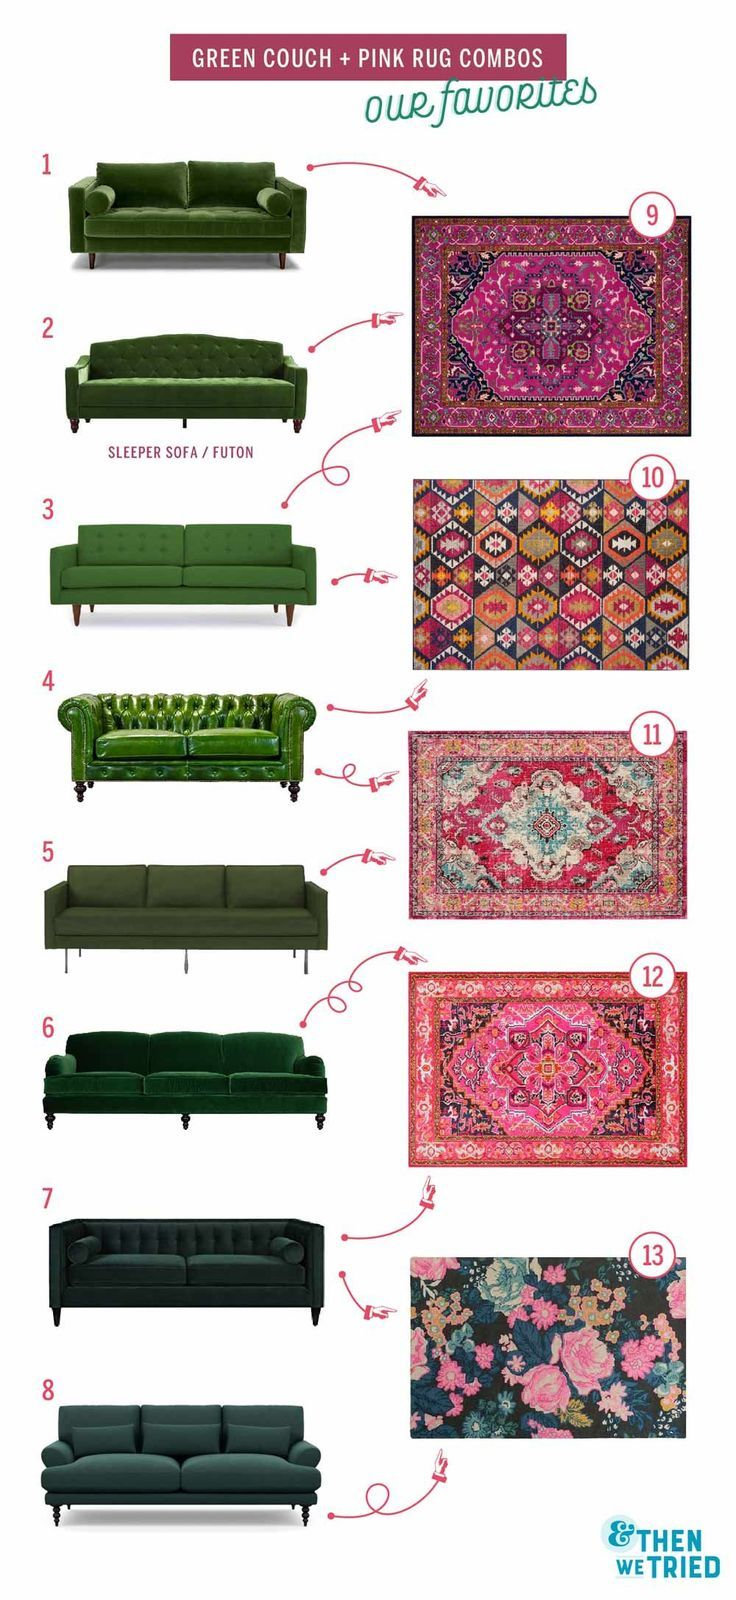 Colorful Living Room Refresh Green Couch And Pink Rug And Then We Tried Wohnzimmer Bunt Wohnzimmer Farbe Teppich Rosa